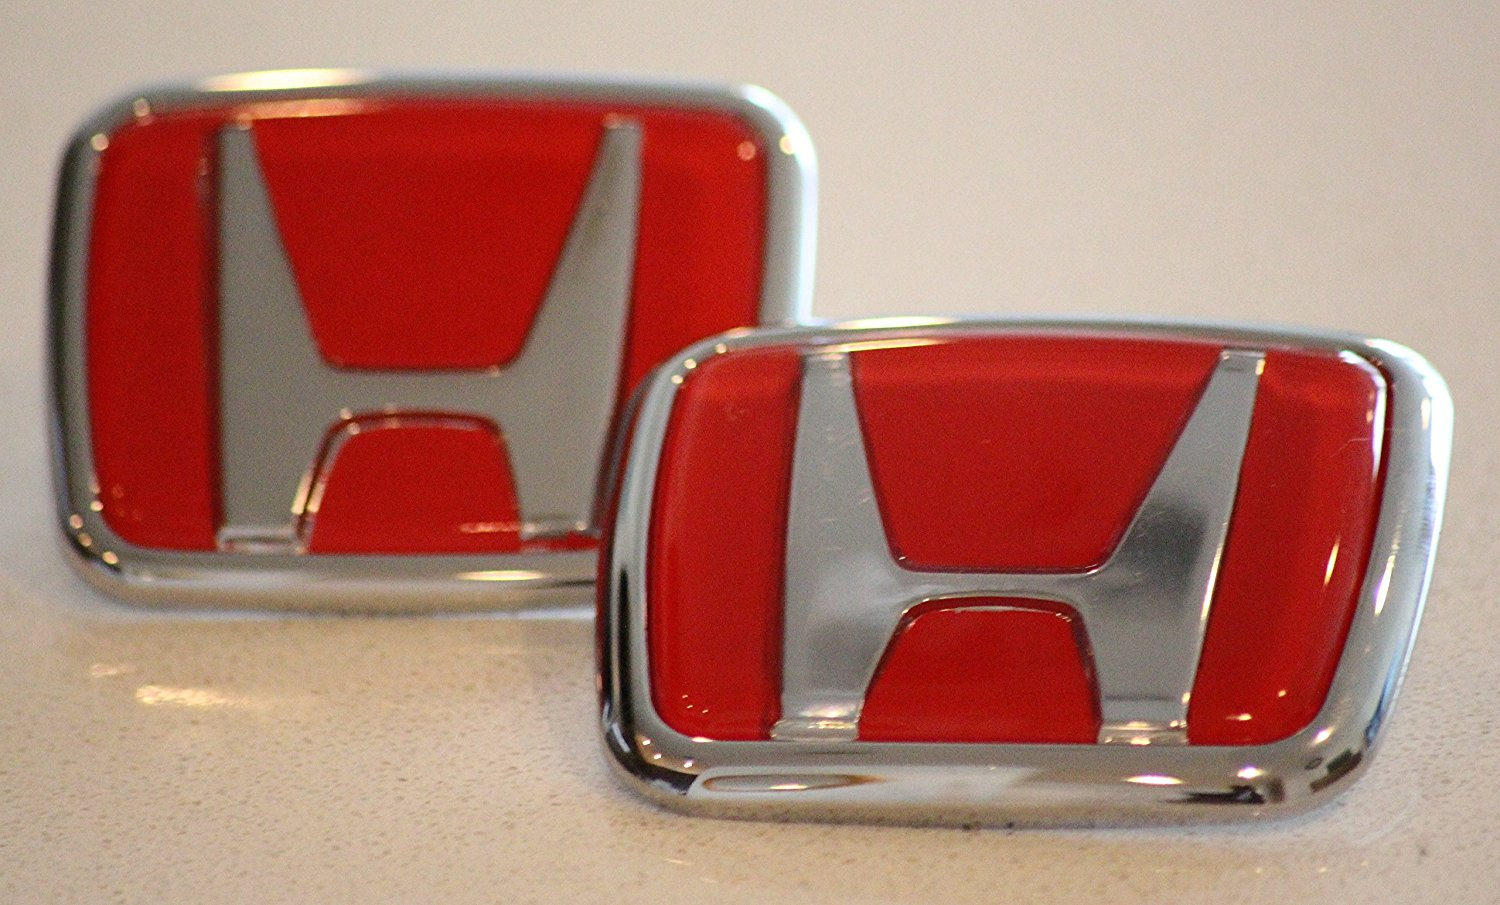 Quality Red Honda Type R Emblem Set JDM RED Front and Rear 1990 -0200 Accord Civic EK9 (Red)